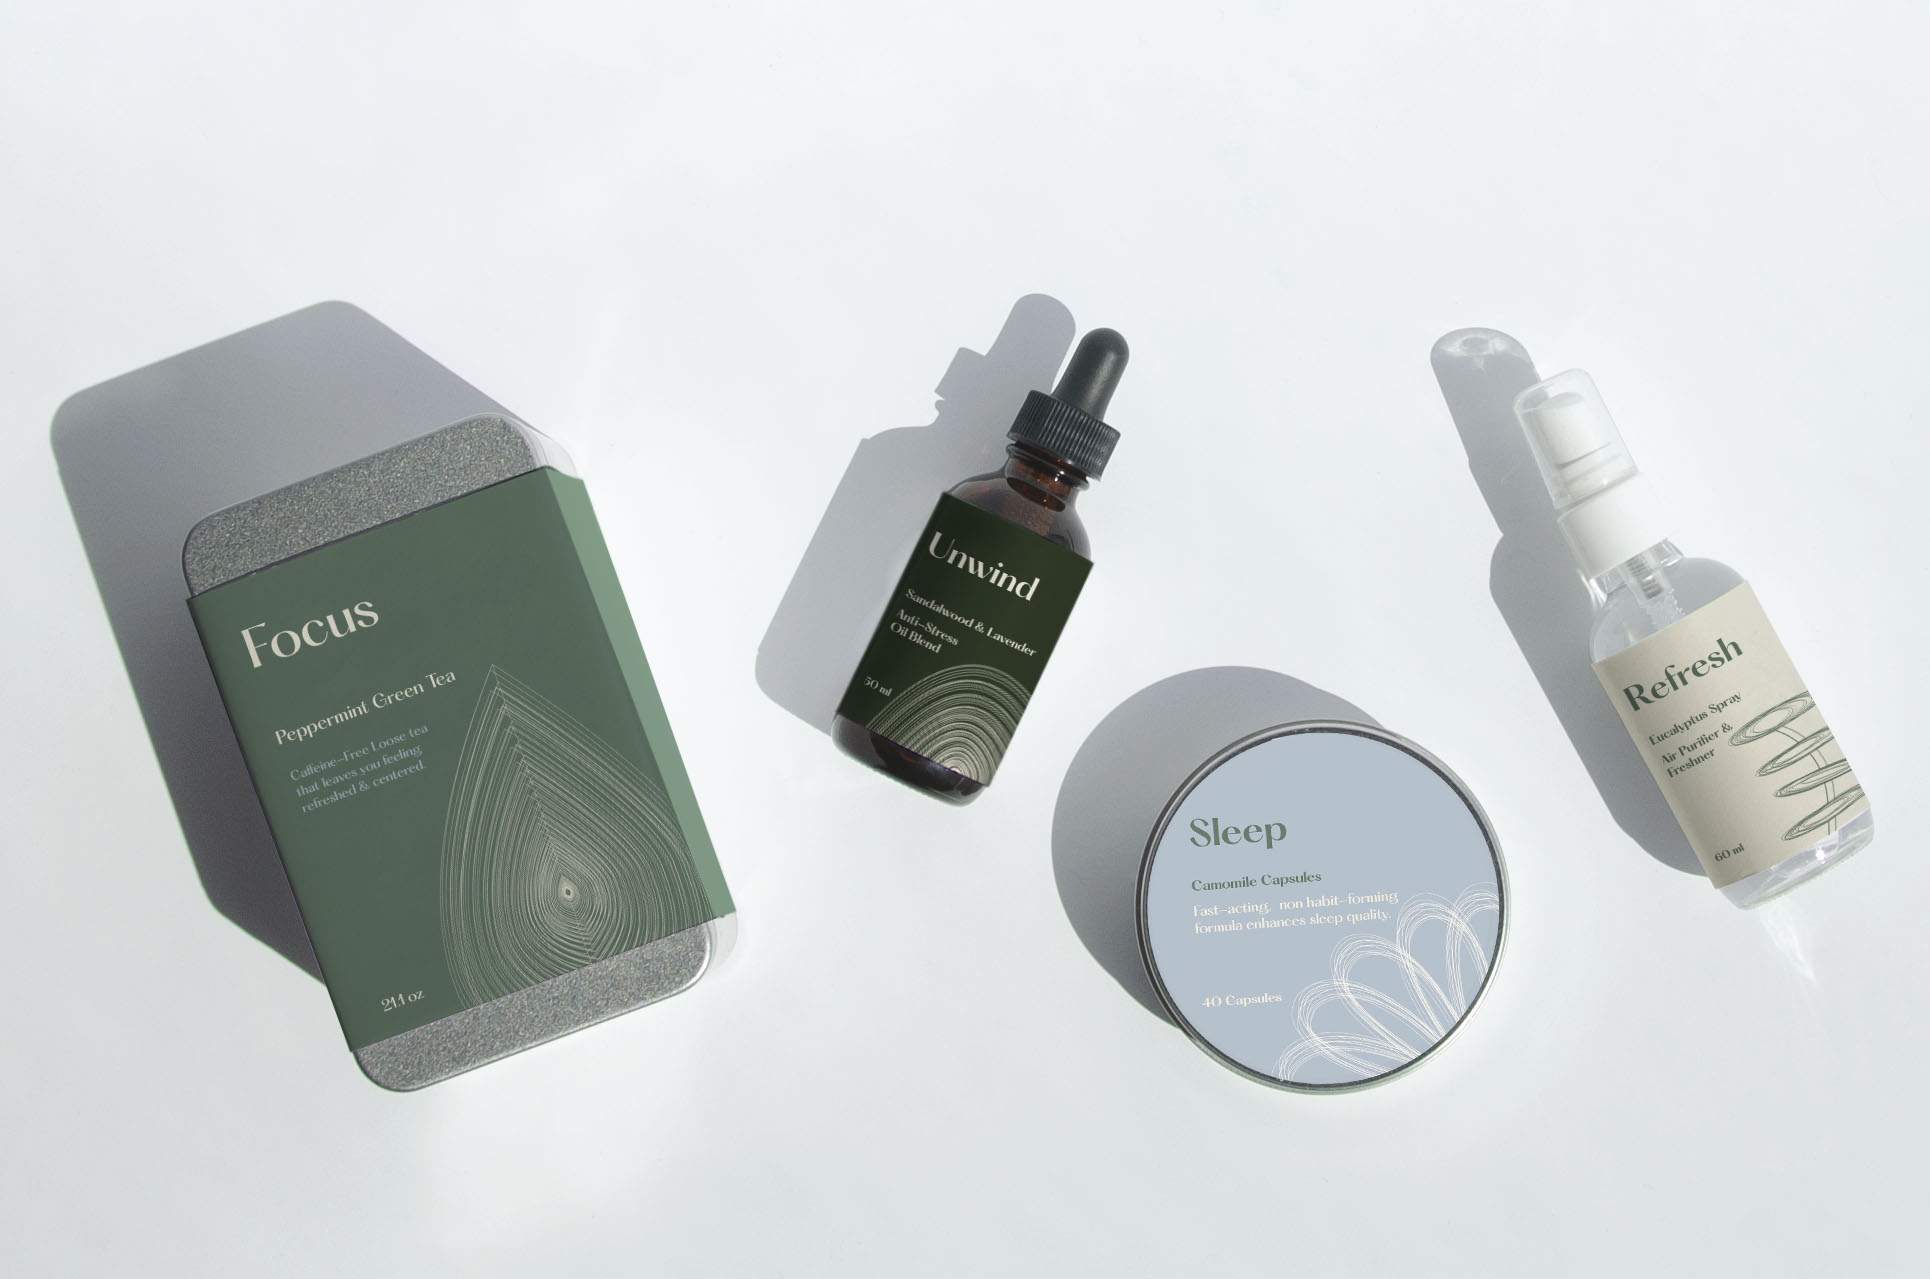 four fictional divine essence products on a white background